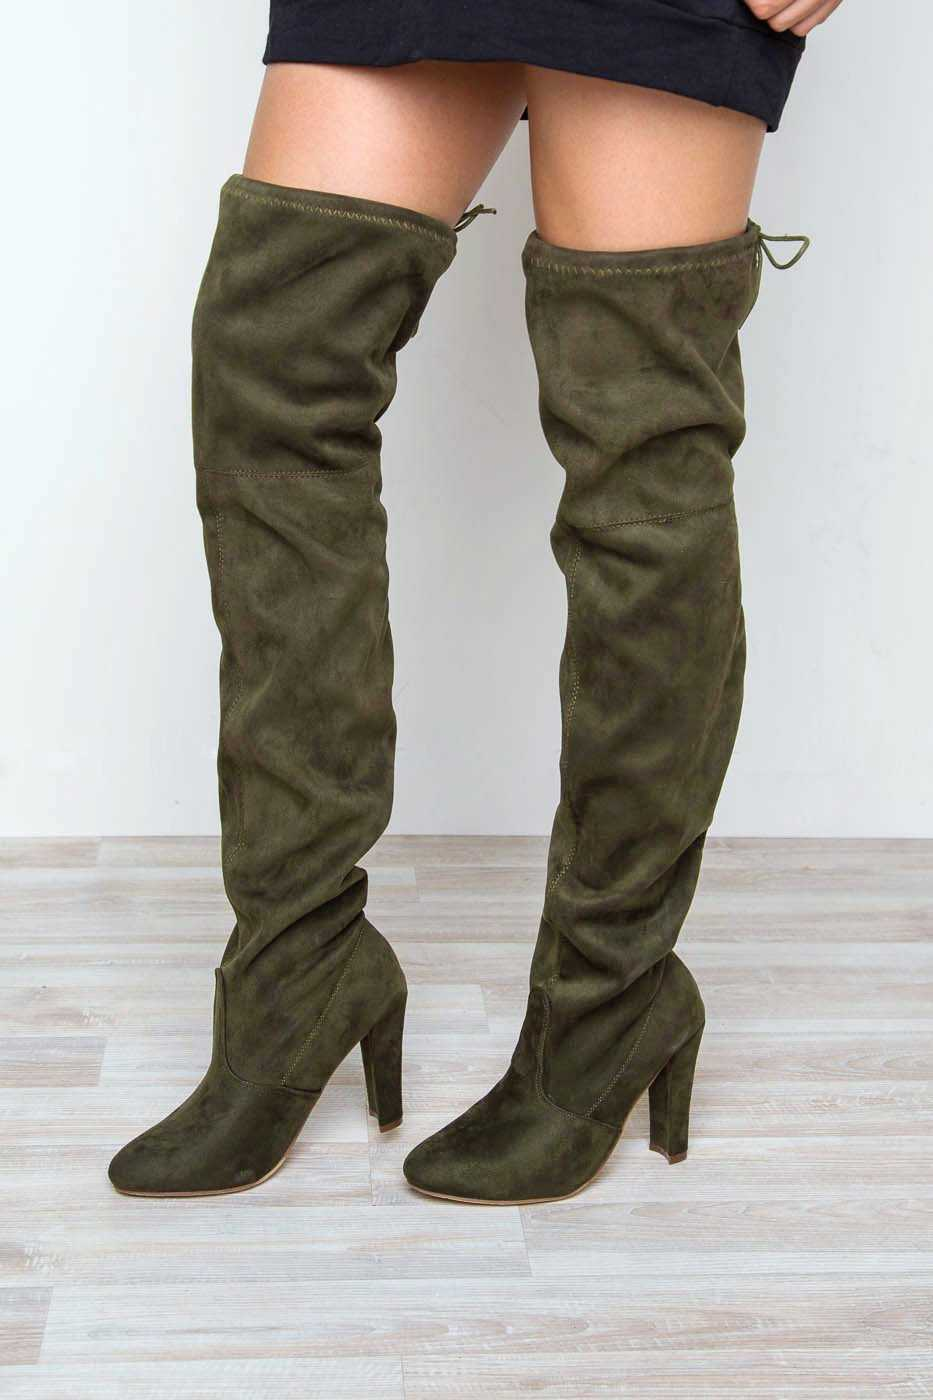 4ceaa797e ... Boots - Showdown Thigh High Boots - Olive ...